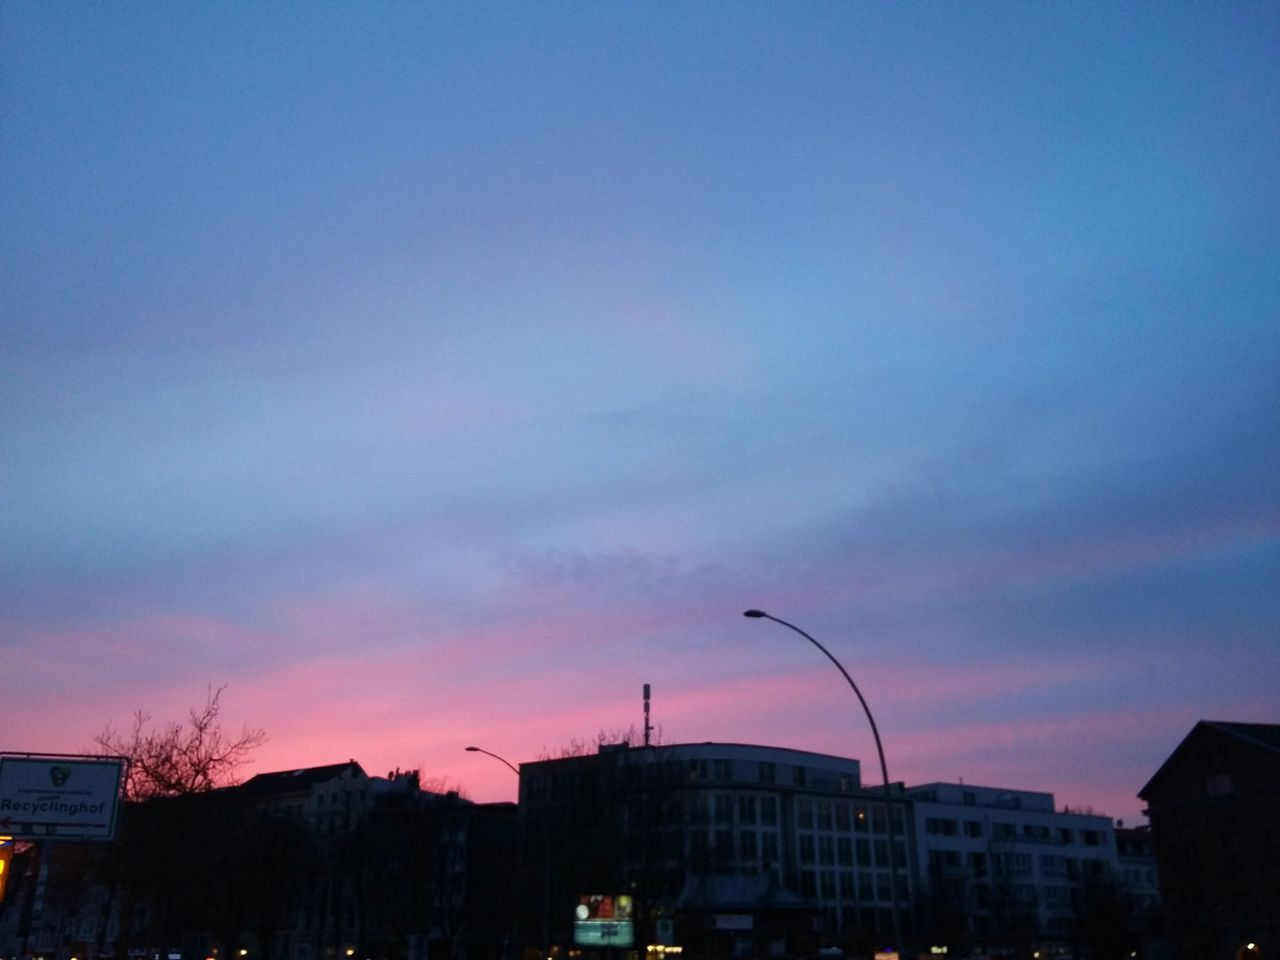 Pink blue purple sky. · Hamburg germany 040 Hamburg meine Perle sunset evening sky Evening beauty Colors urban landscape